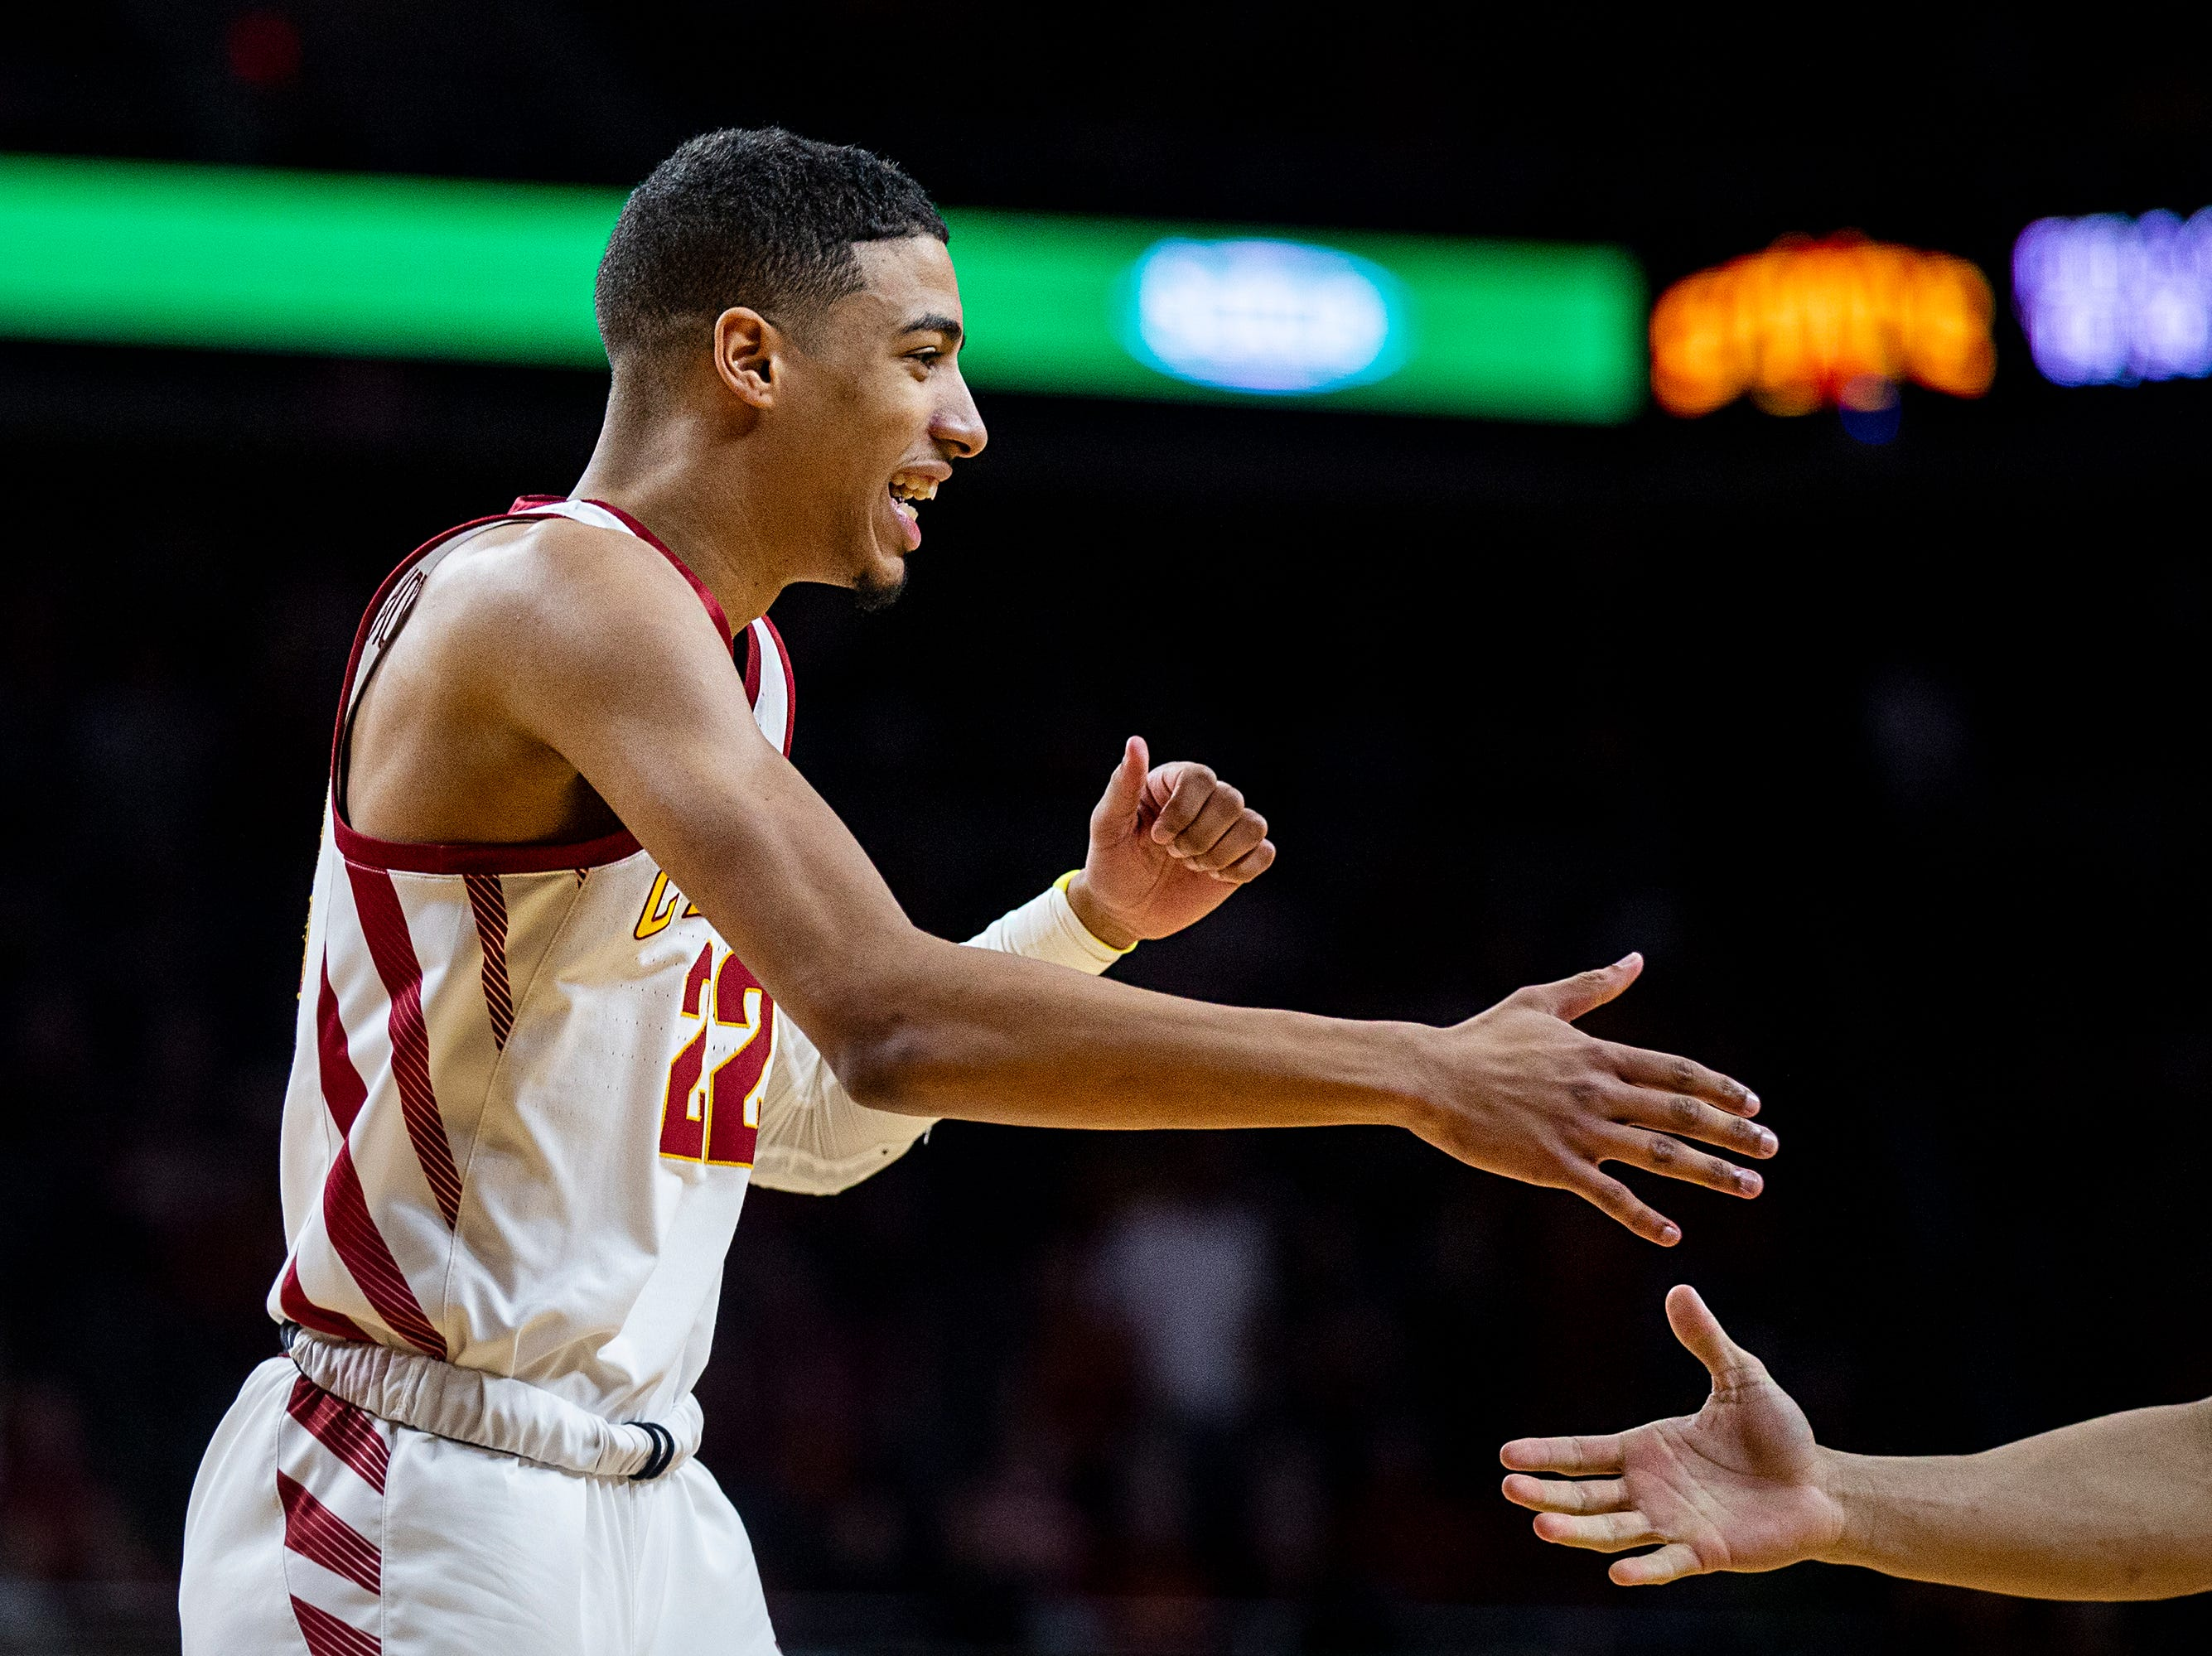 Iowa State's Tyrese Haliburton gets a five from a teammate during the Iowa State men's basketball game against Texas on Saturday, Feb. 2, 2019, in Hilton Coliseum. The Cyclones defeated the Longhorns 65-60.